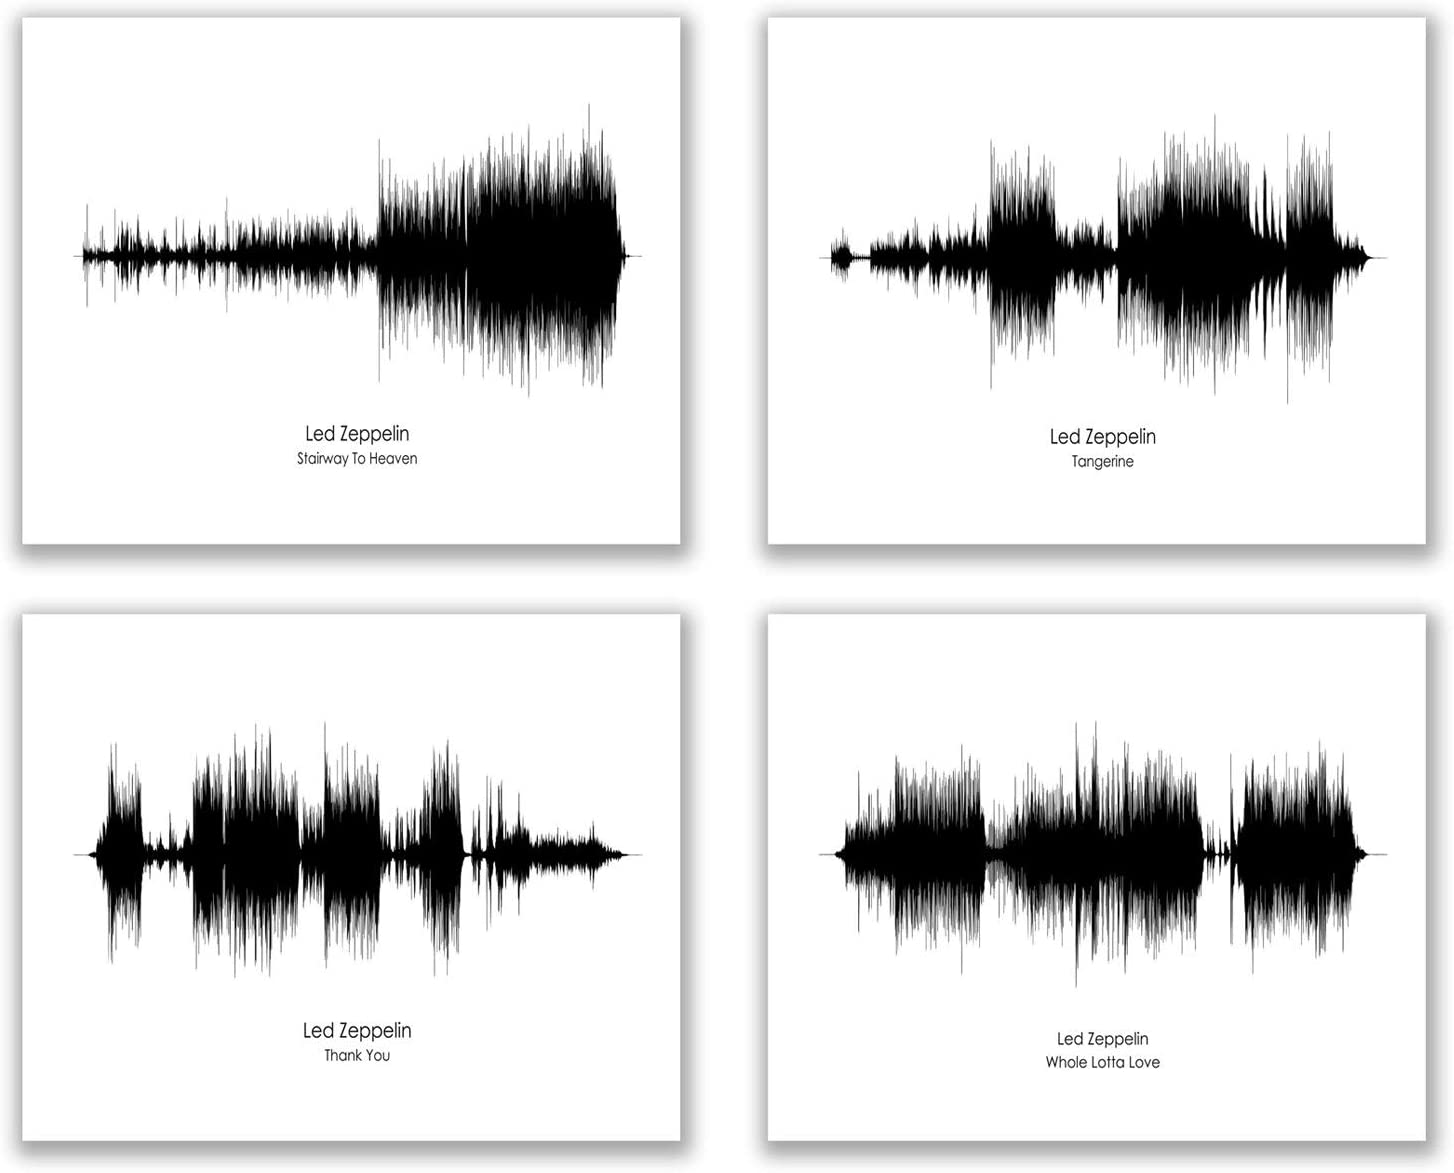 Led Zeppelin Sound Wave Wall Art Decor Prints - Set Of 4 (8x10) Inch Poster Photos